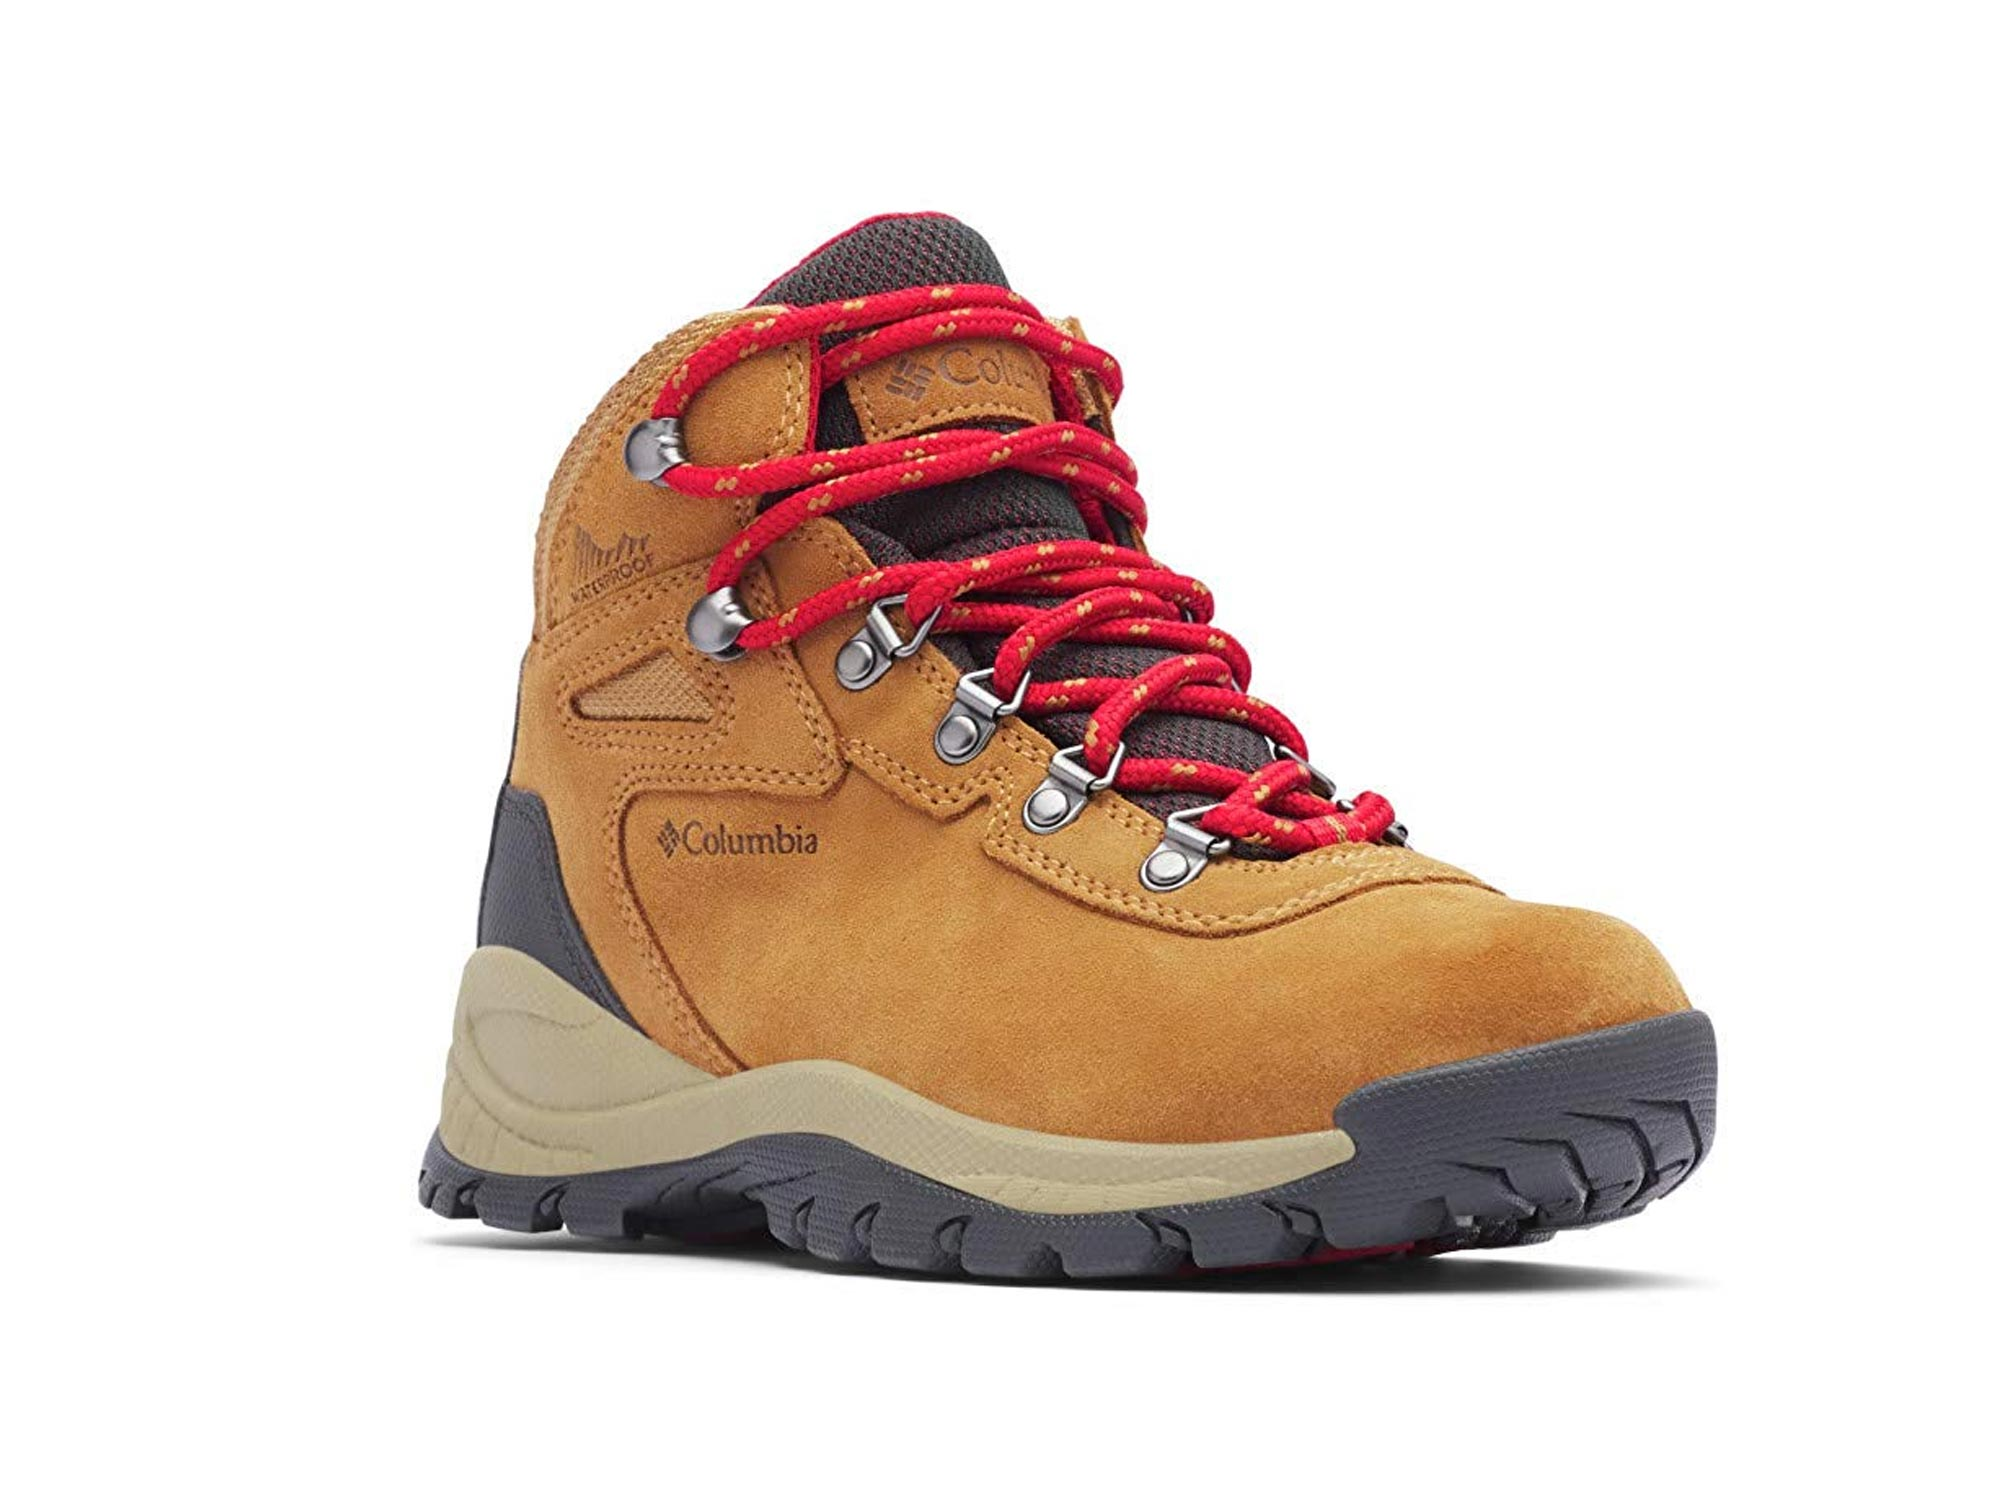 Columbia Womens Newton Ridge Plus Waterproof Amped Boot, Ankle Support, High-Traction Grip